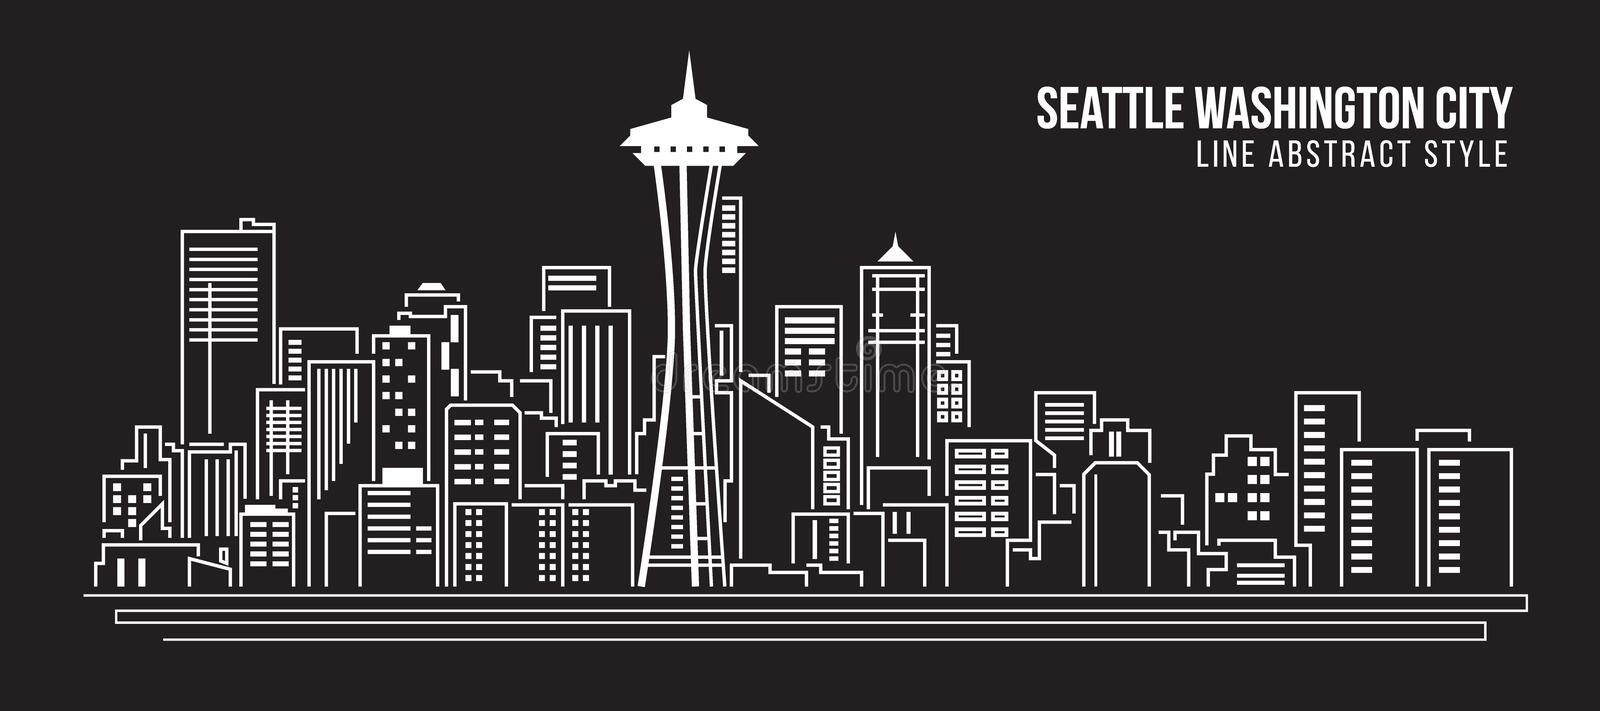 Cityscape Vector de Illustratieontwerp van de Rooilijnkunst - Seattle Washington City royalty-vrije illustratie